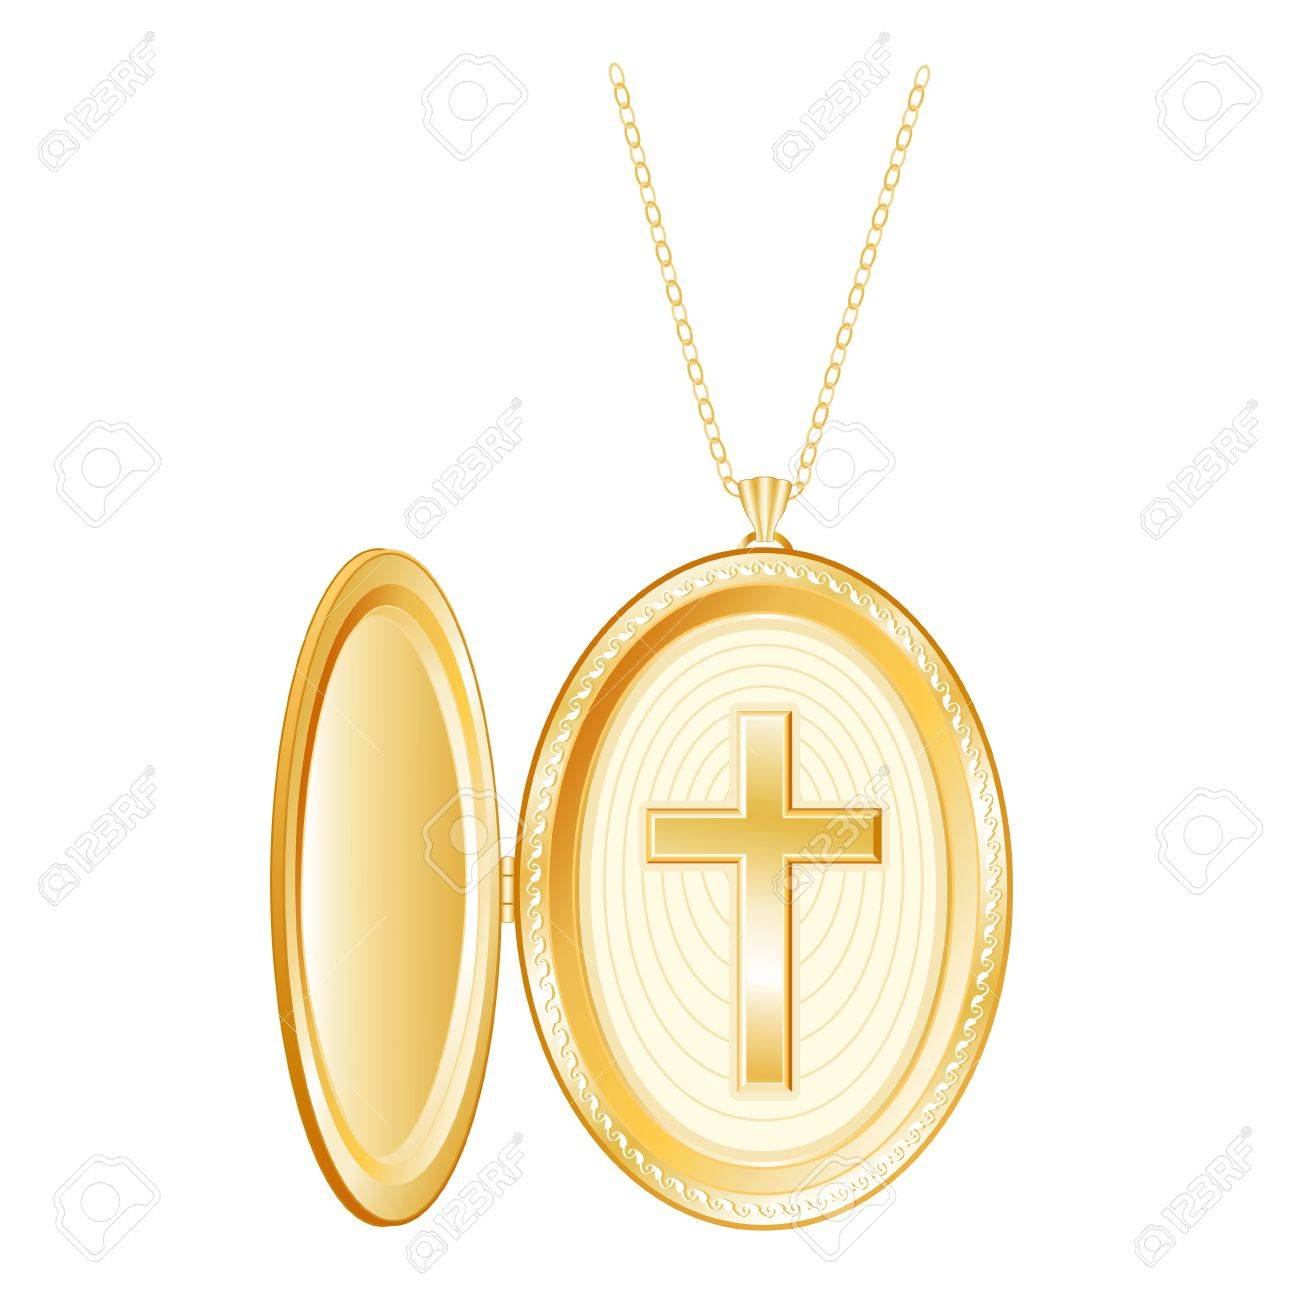 Christian Cross Engraved Vintage Gold Locket, necklace chain, isolated on white Stock Vector - 14250968